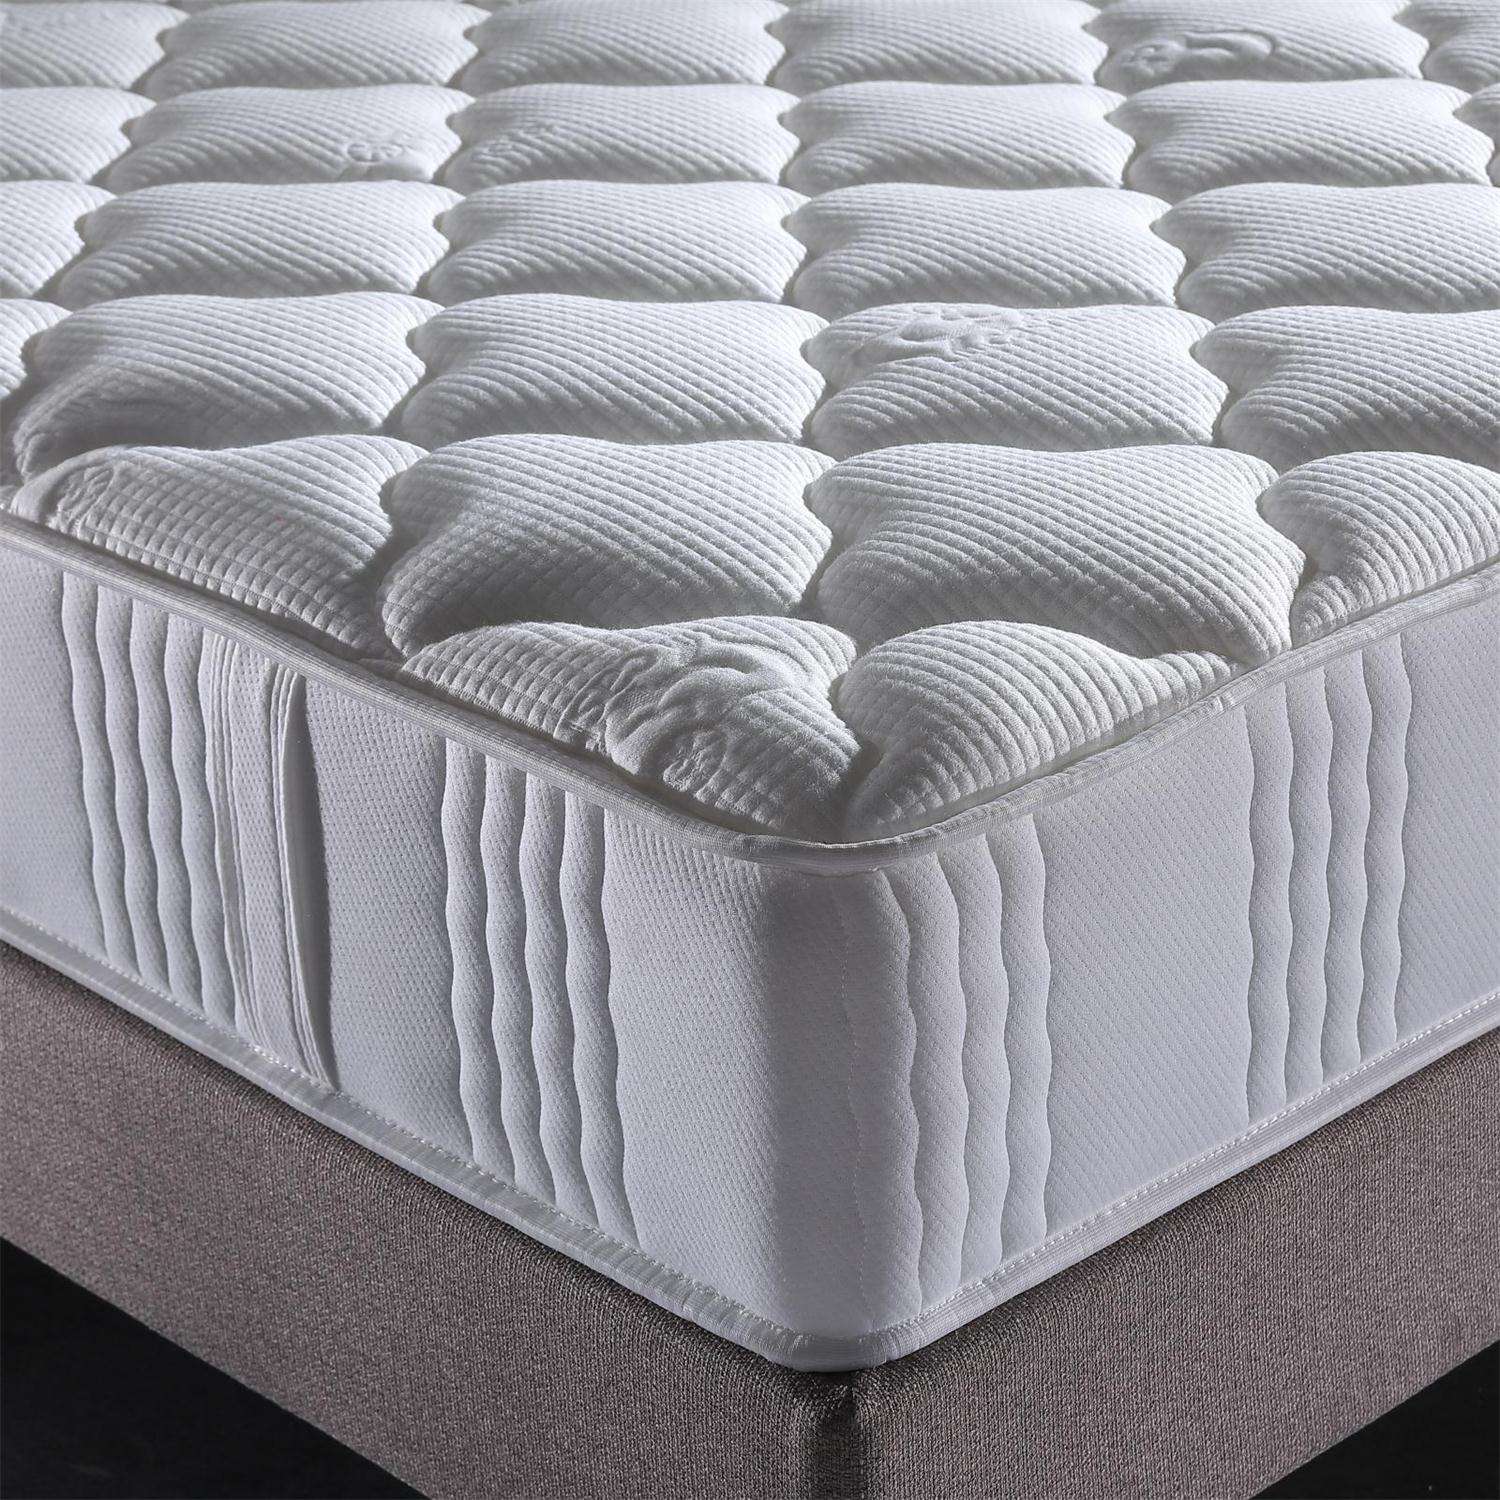 application-highest hotel collection mattress high Class Fabric for tavern-JLH-img